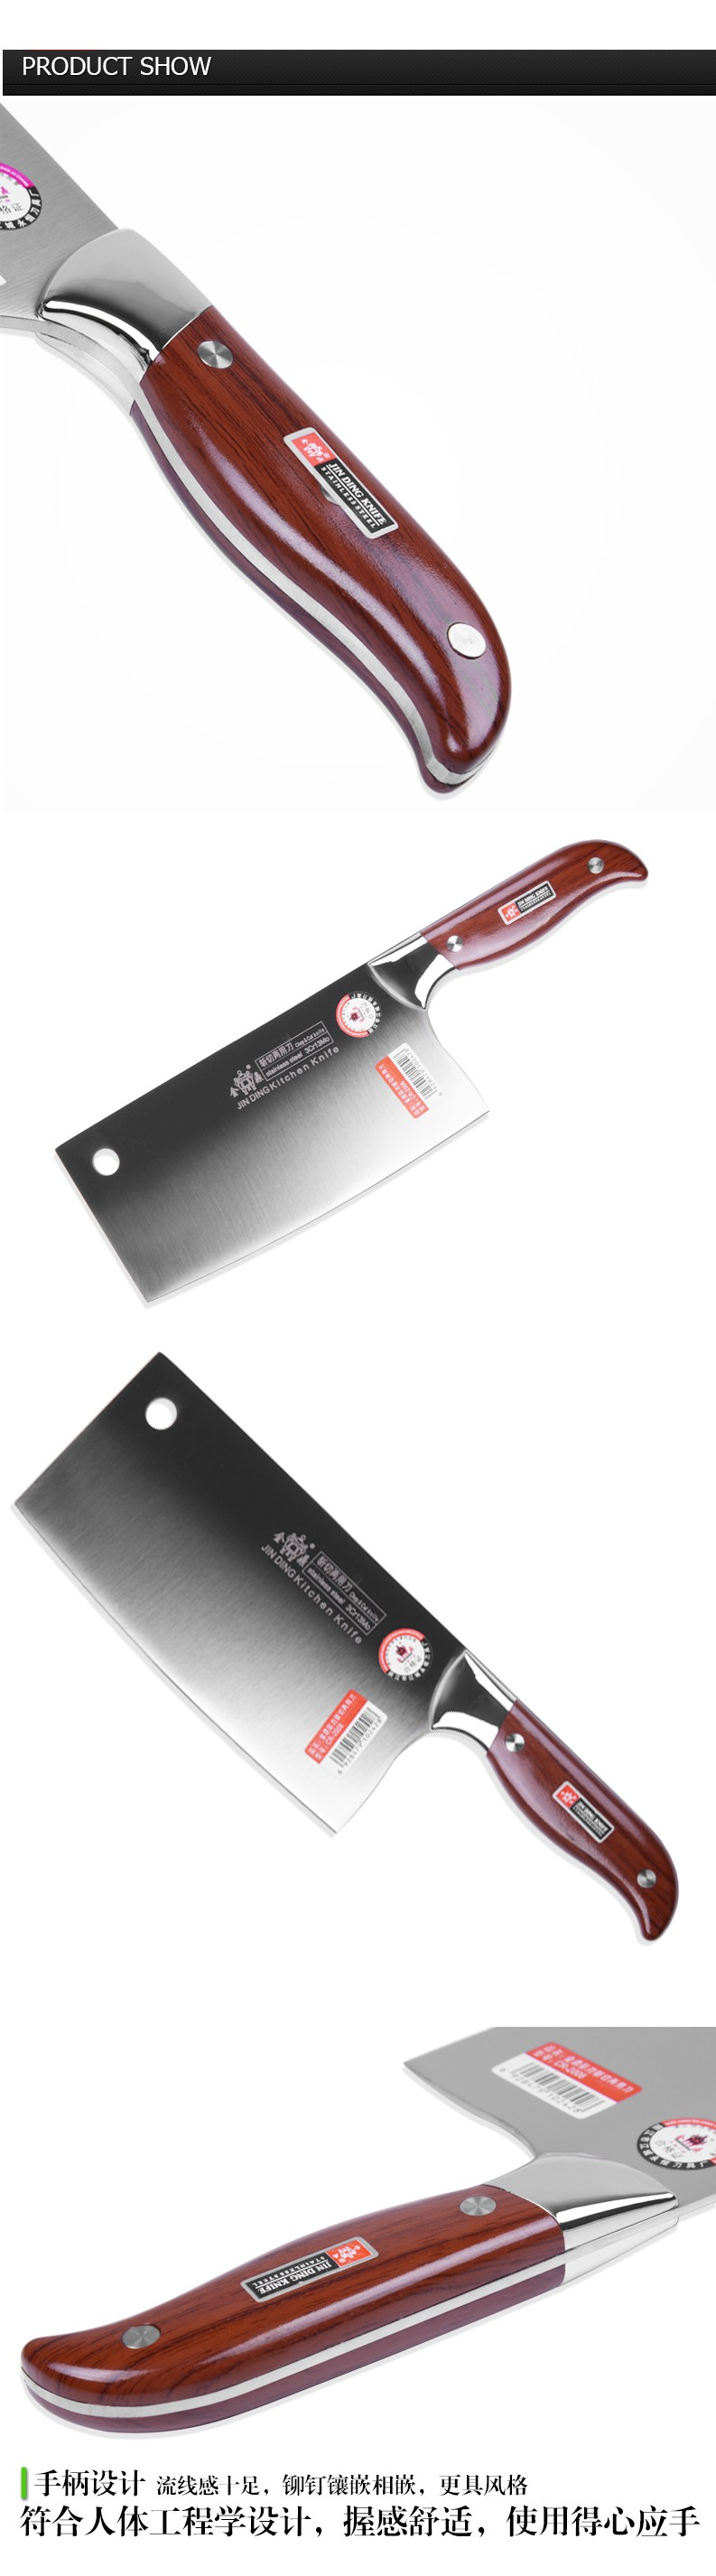 Buy kitchen knives knife kitchen accessories chef /shibazi knives vg10 santoku set cooking tools steel knifes cheap